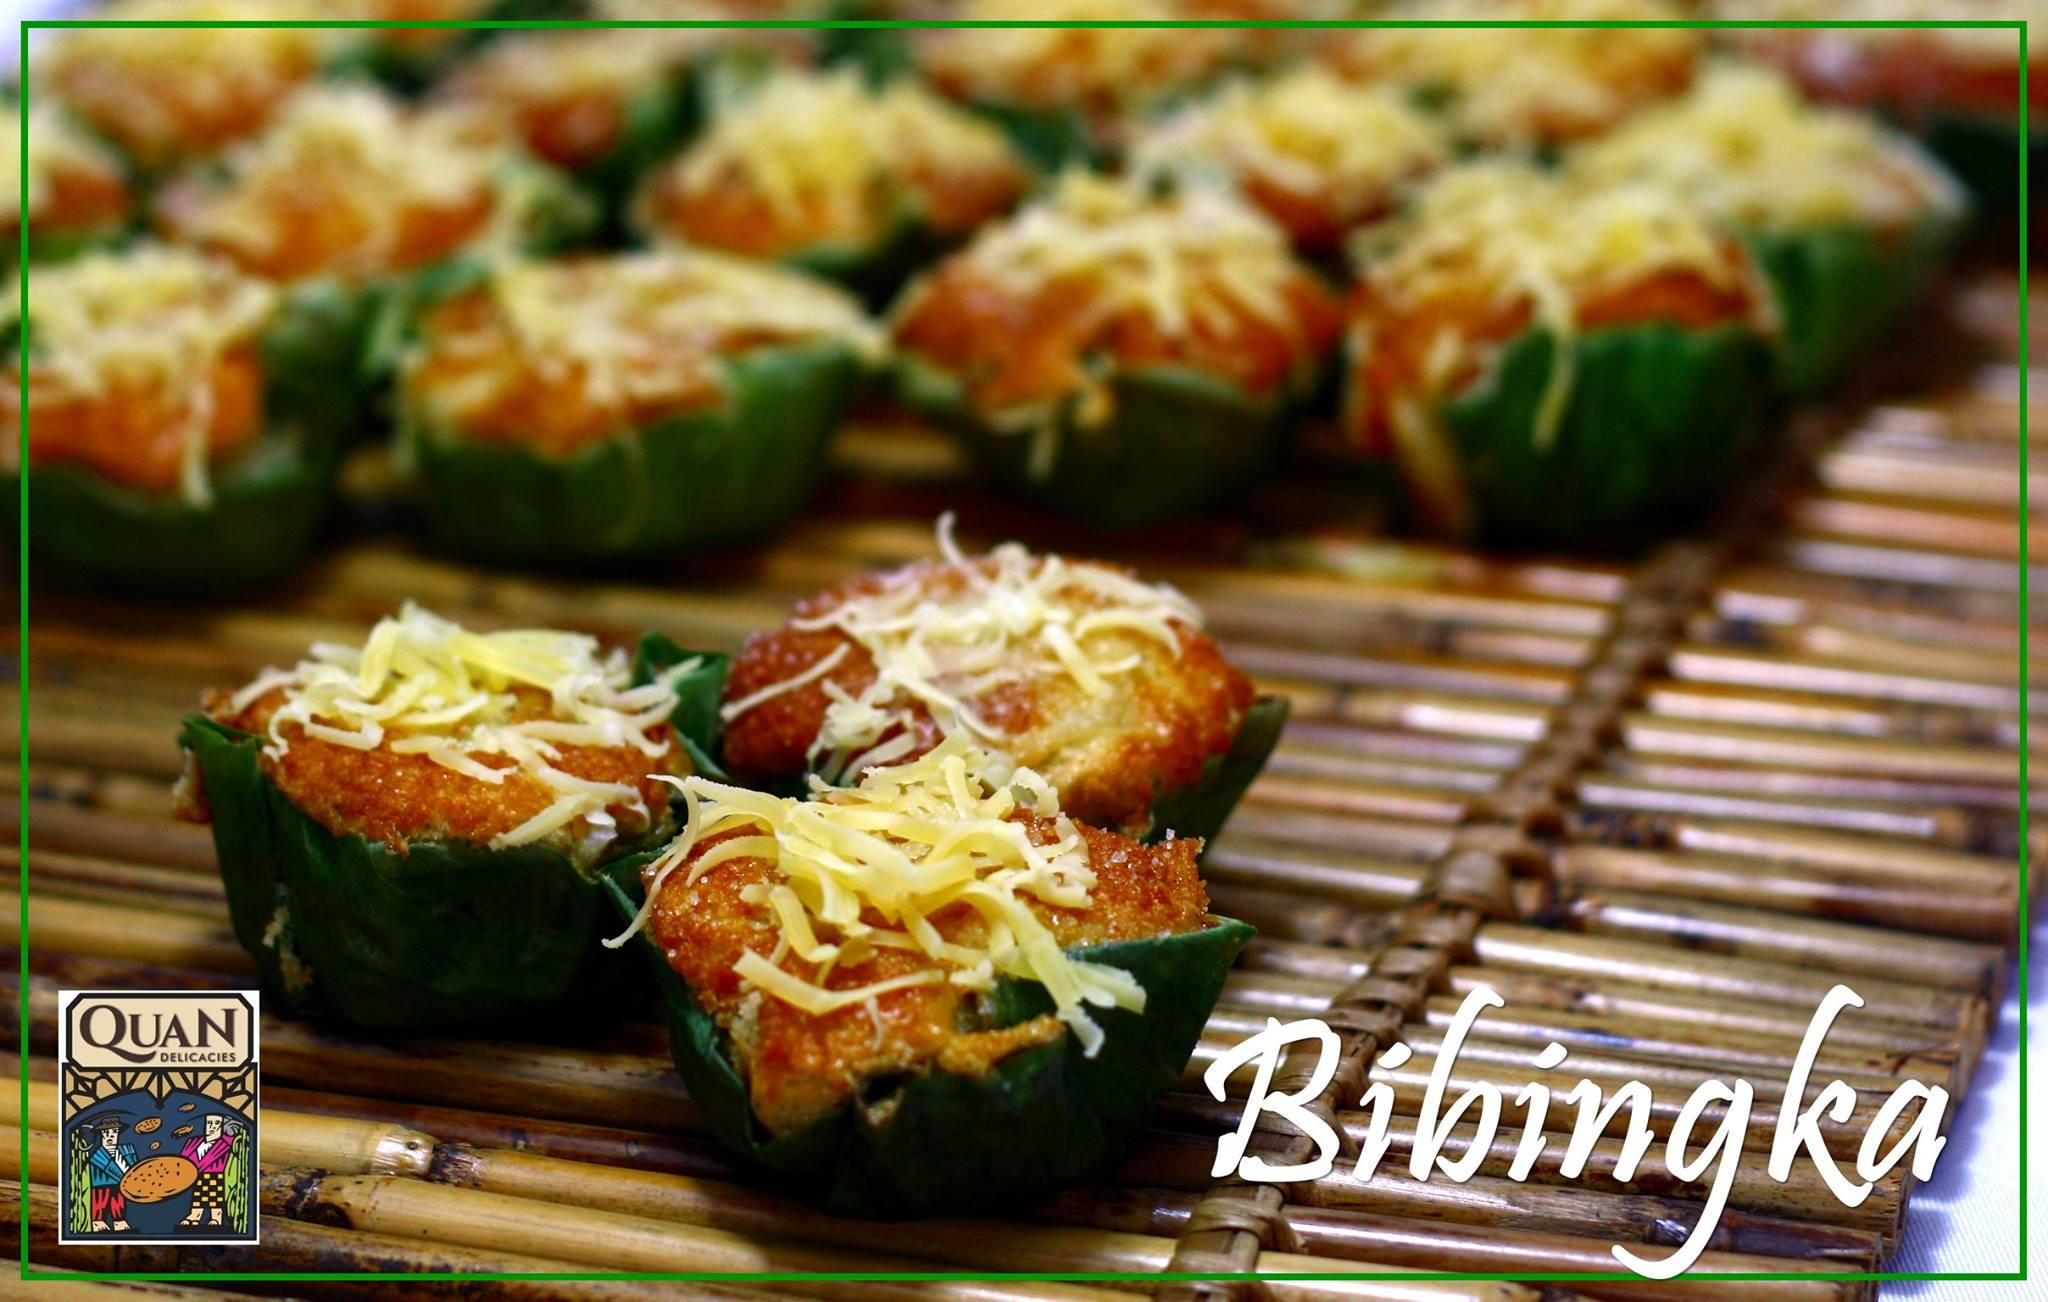 ORDER NOW! PARTY BILAO LOADED WITH FILIPINO KAKANIN AND OTHER GOODIES | QUAN DELICACIES